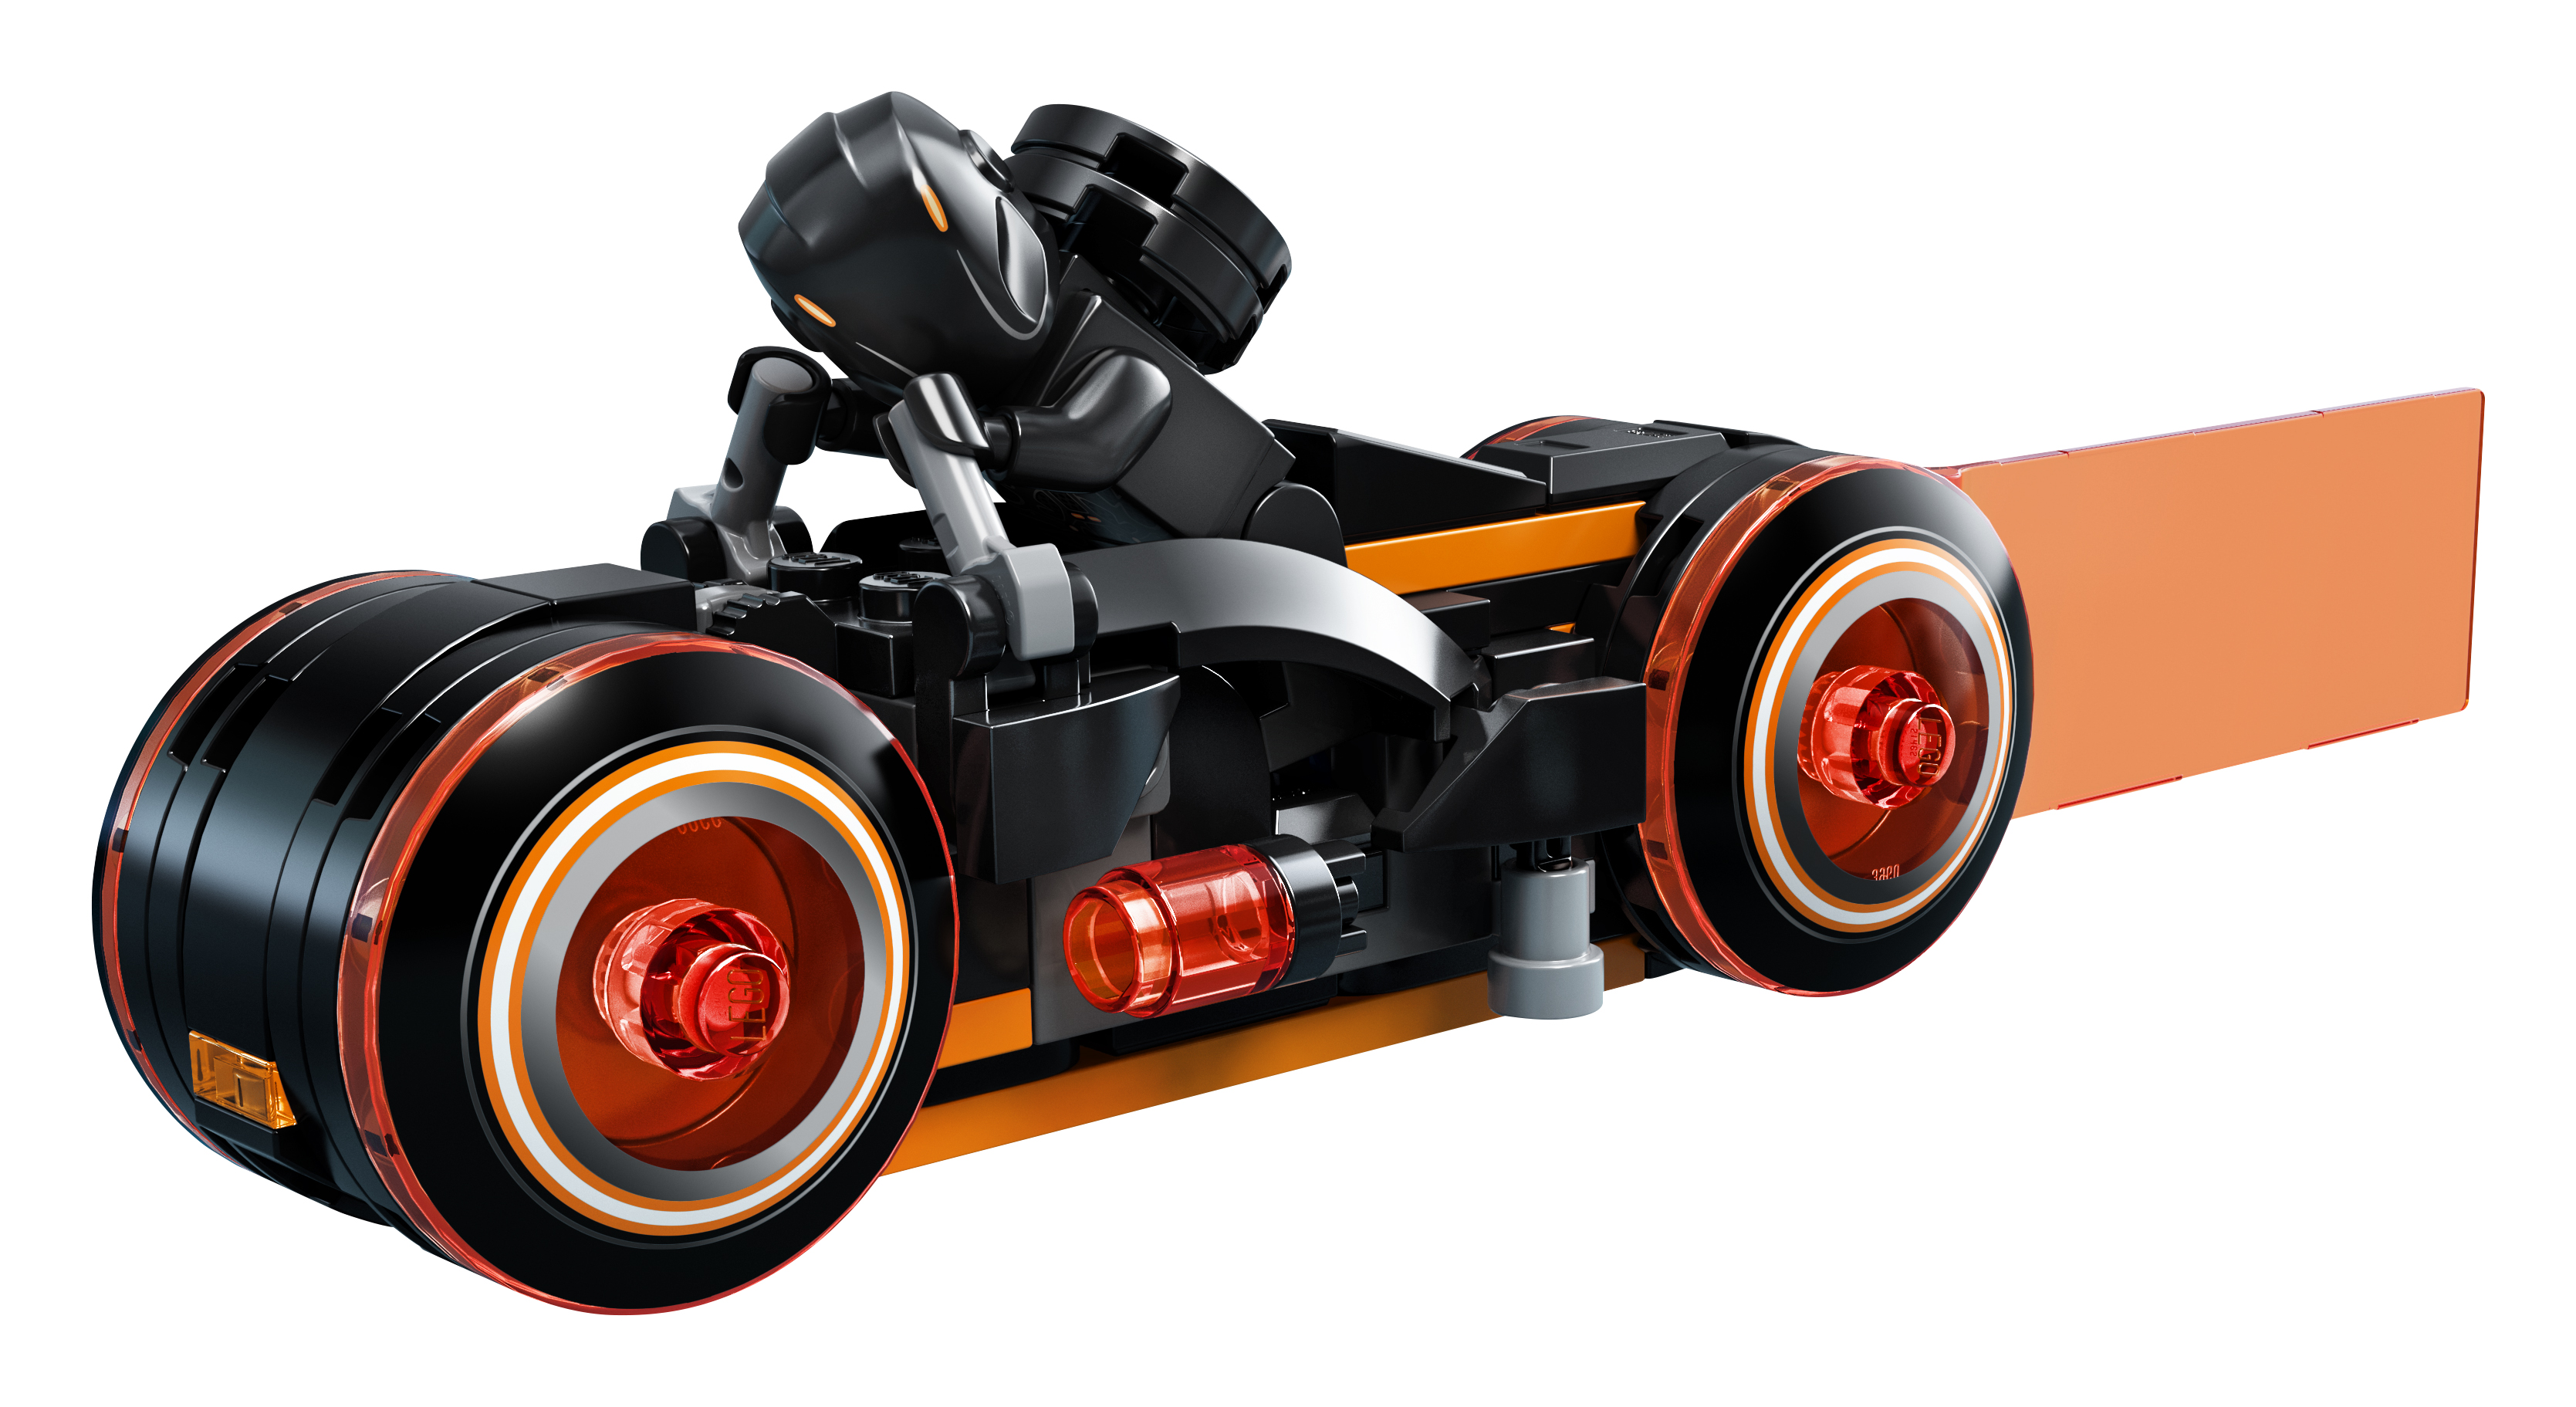 LEGO 21314 Tron: Legacy comes to LEGO Ideas on 31 March!